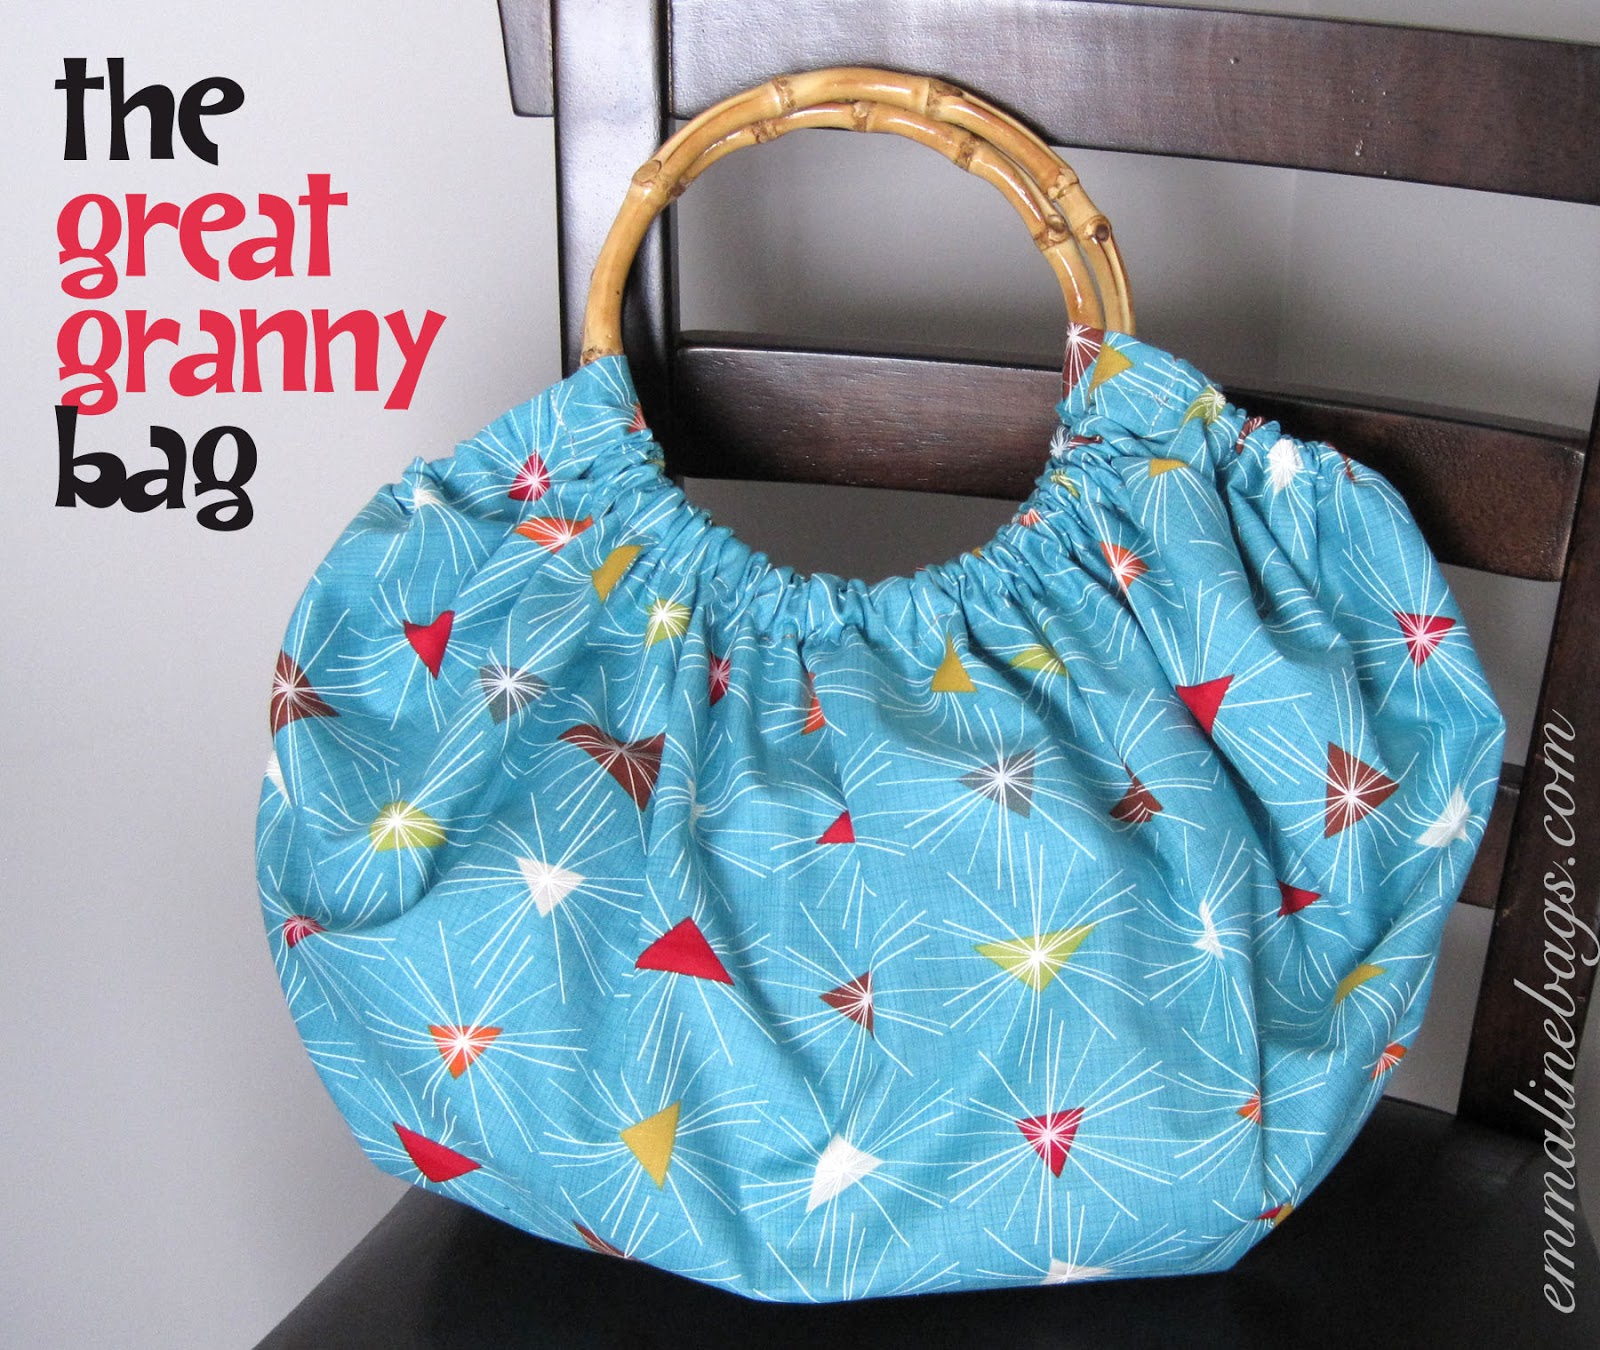 Free Patterns For Purses And Bags : ... Patterns and Purse Supplies: Free Purse Tutorial: The Great Granny Bag